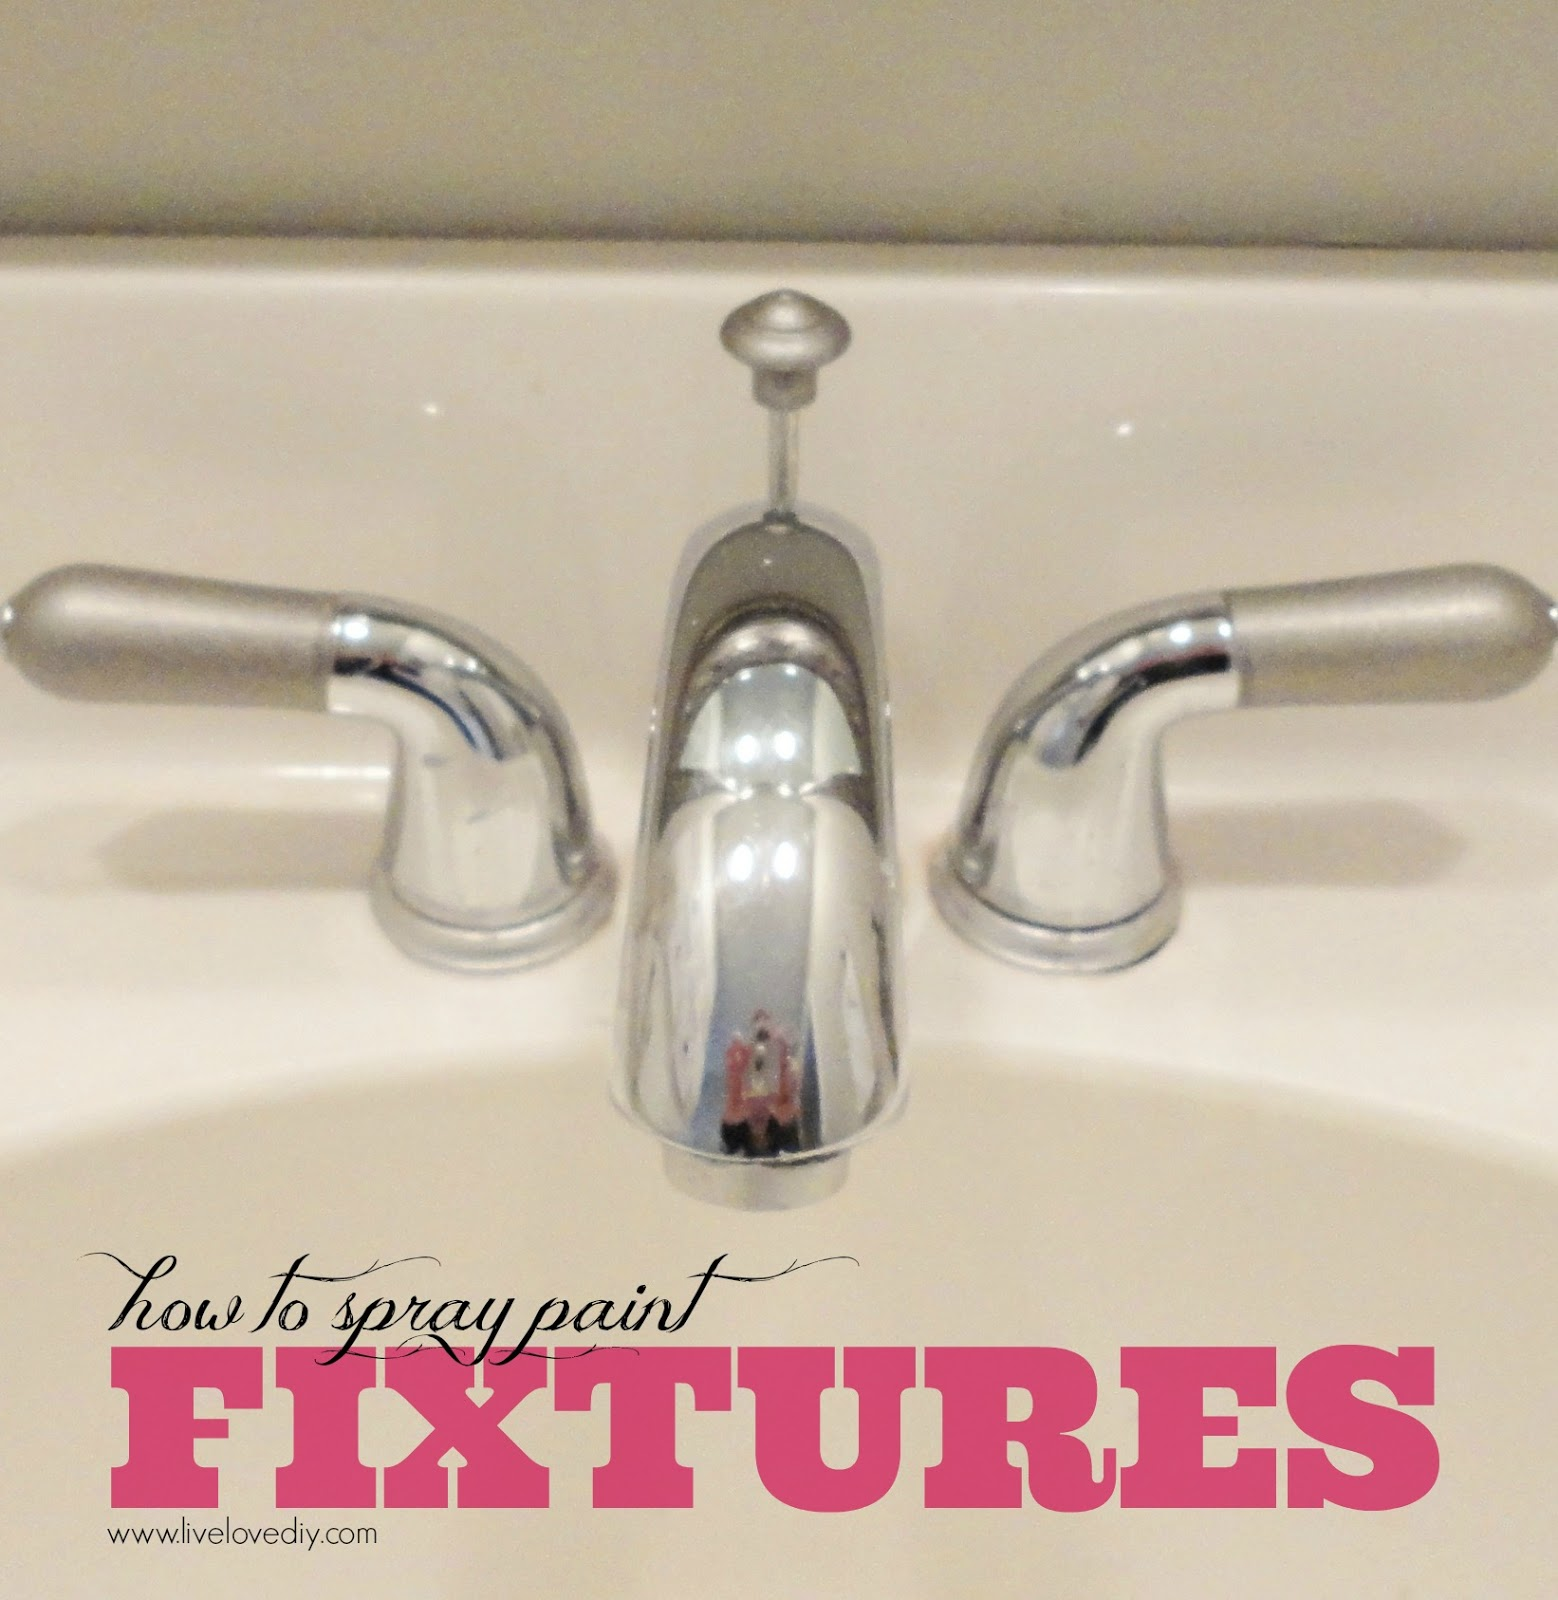 LiveLoveDIY Spray Paint Tips What You Never Knew About Spray Paint - Refinishing brass bathroom fixtures